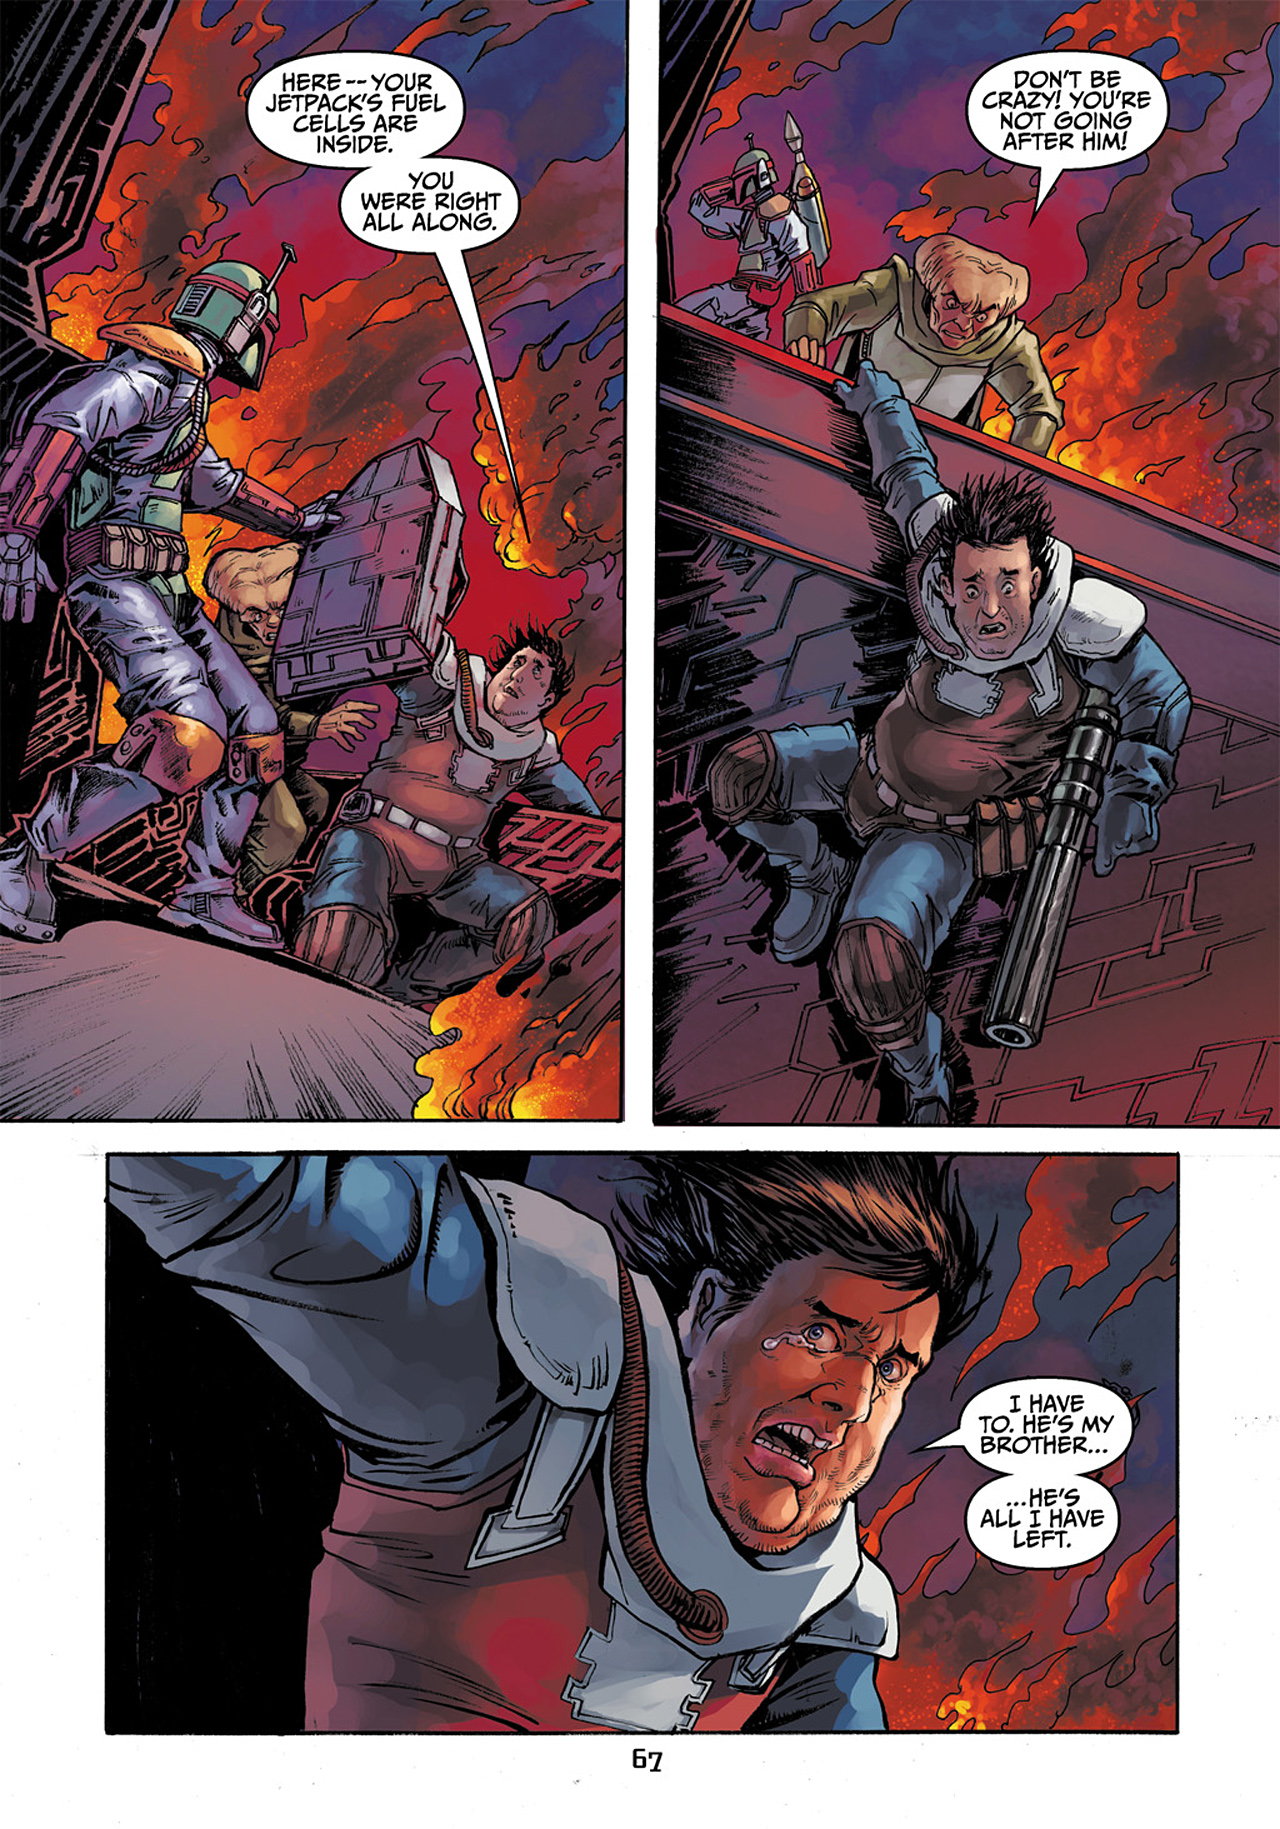 Read online Star Wars Adventures comic -  Issue # Issue Boba Fett and the Ship of Fear - 68